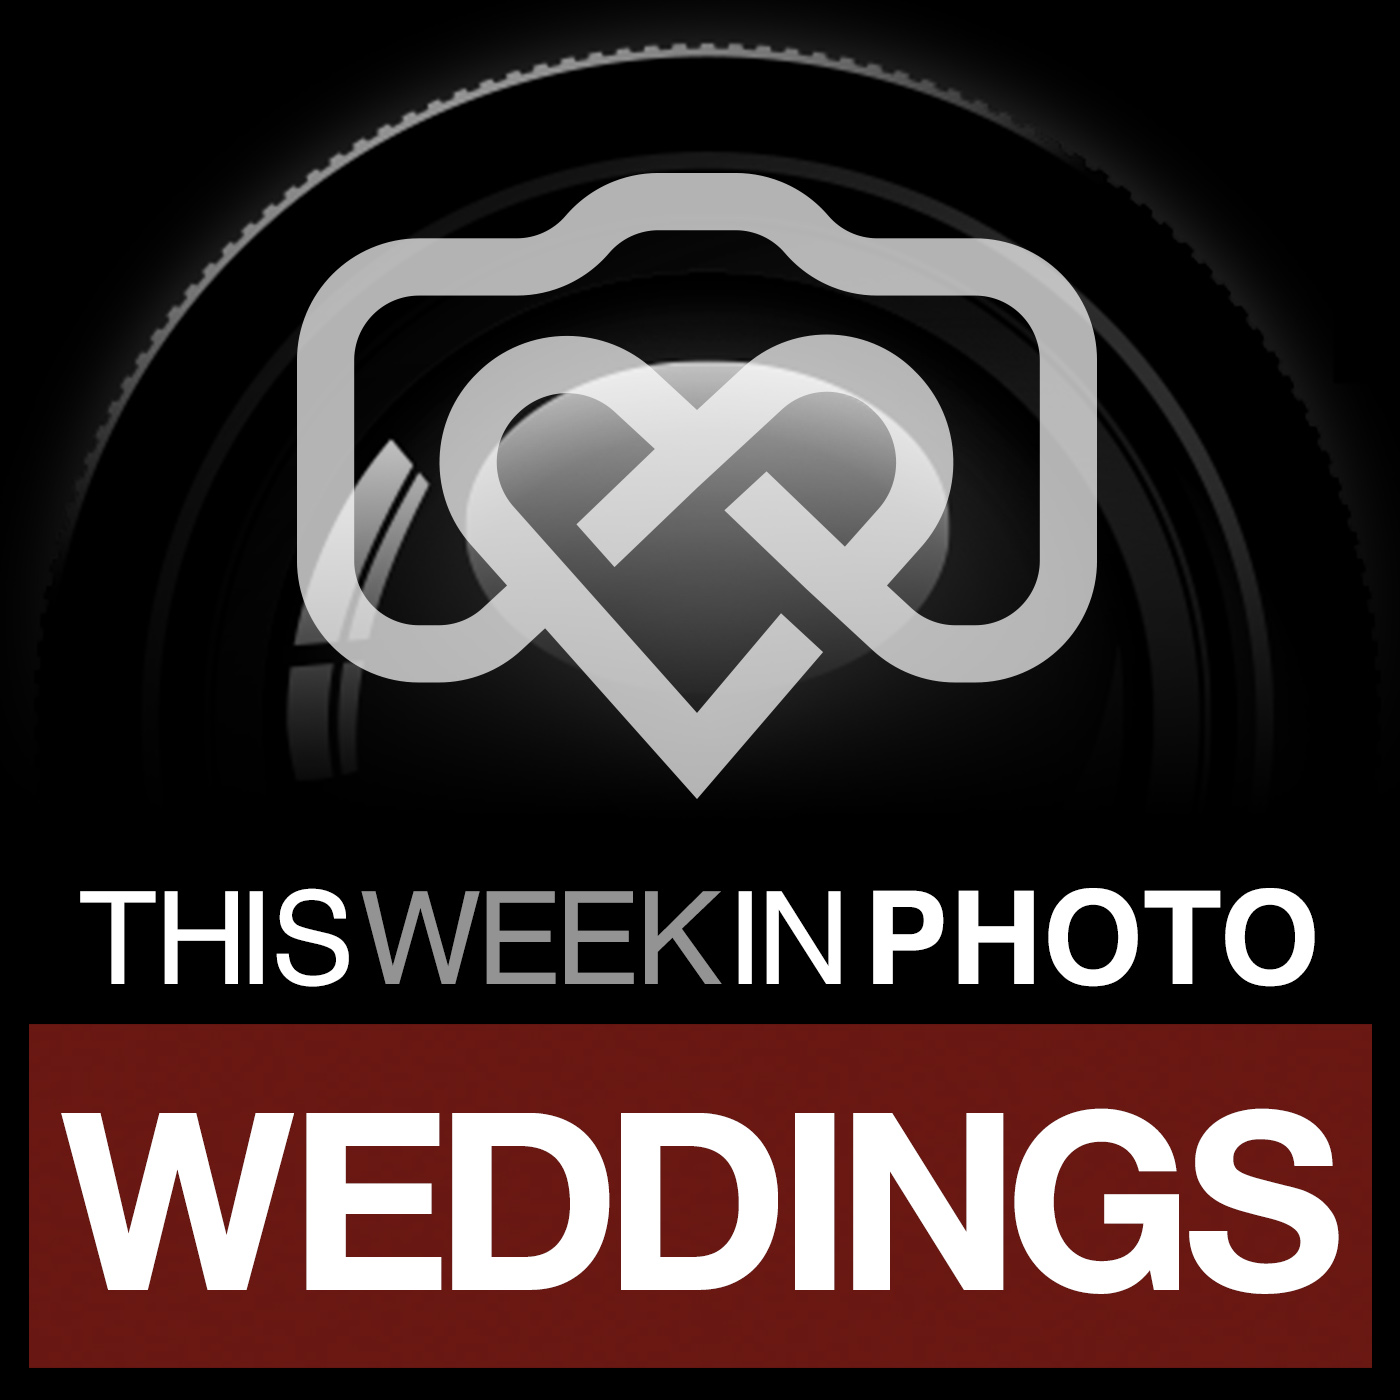 TWiP Weddings 043: Gifyyy Booth